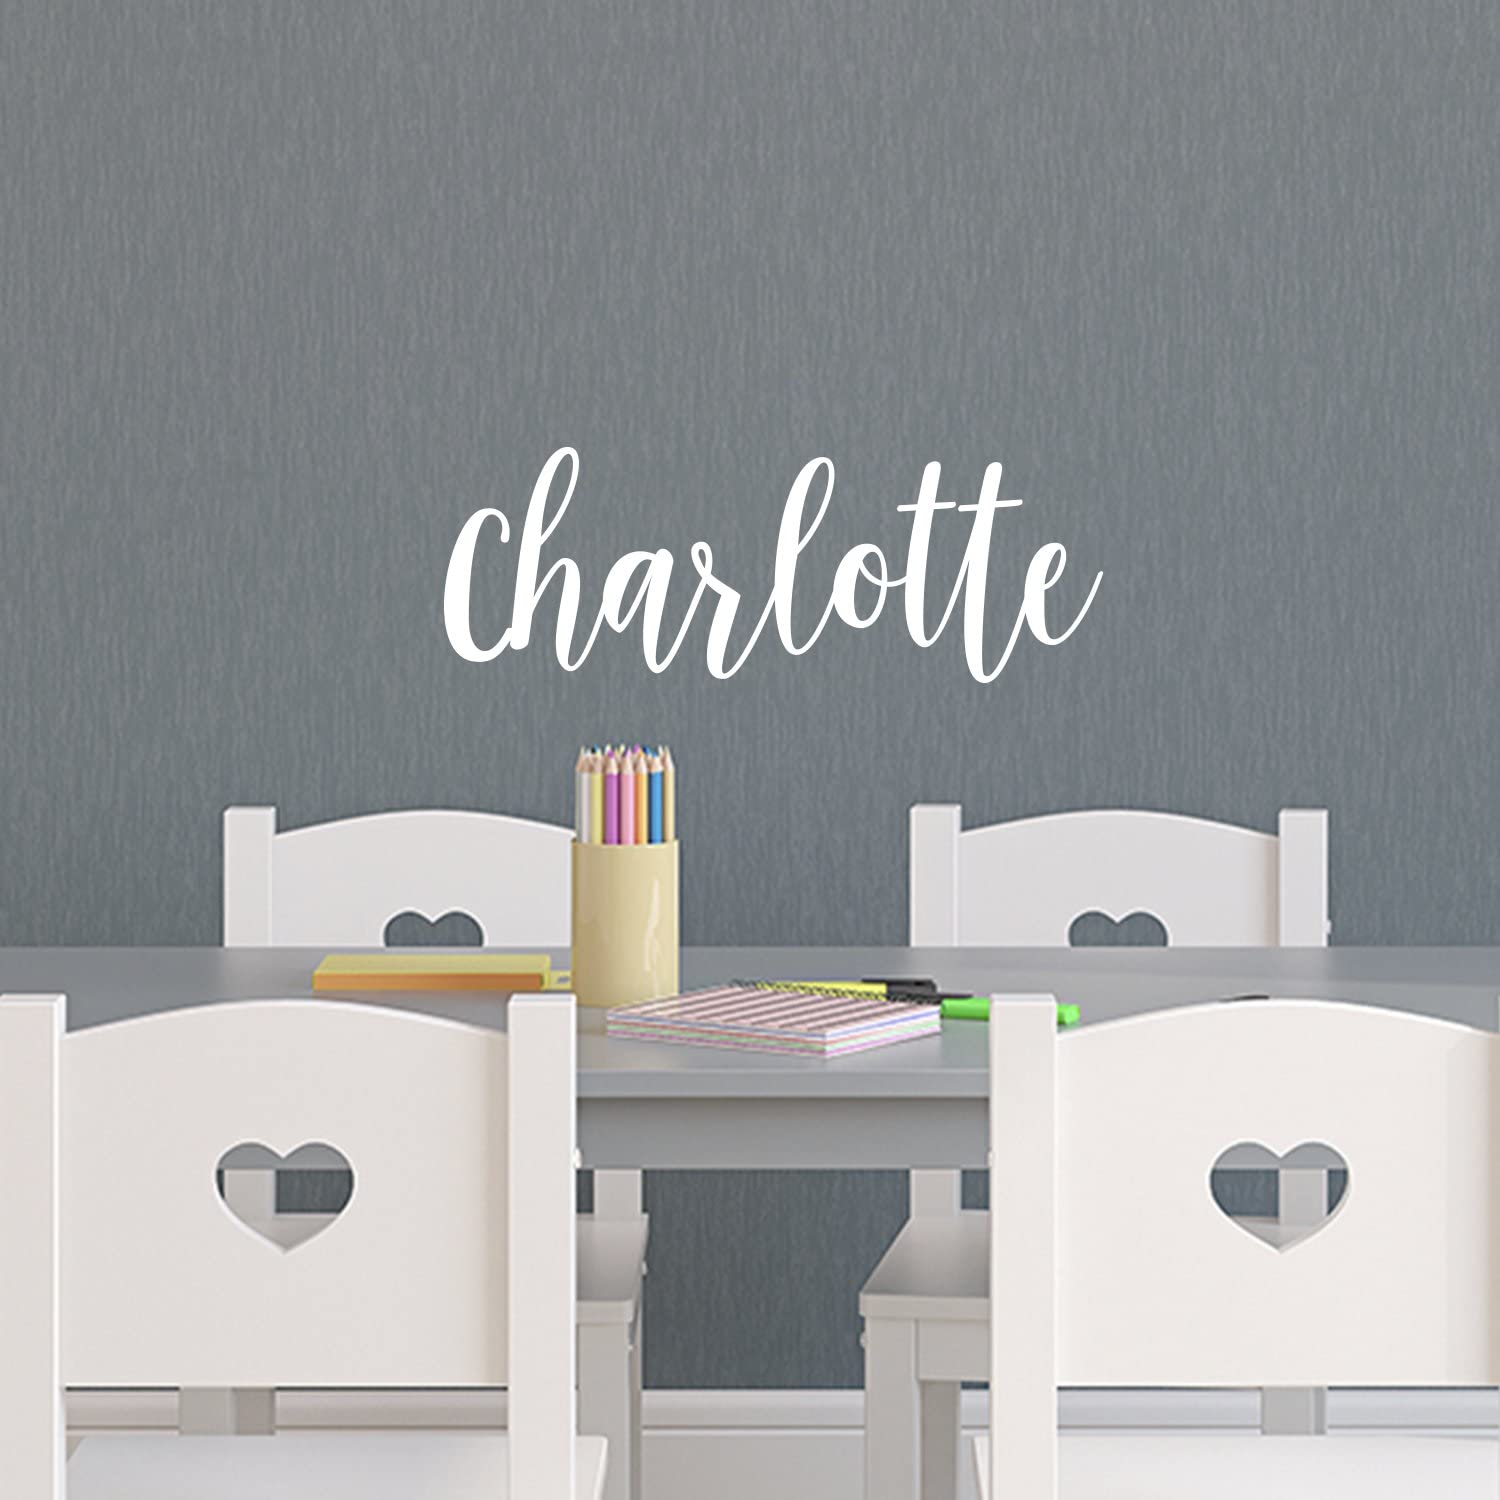 """Vinyl Wall Art Decal Girls Name - 'Charlotte' Text Name - 12"""" x 39"""" - Girls Bedroom Vinyl Wall Decals - Cute Wall Art Decals for Baby Girl Nursery Room Decor (12"""" x 33"""", White Cursive)"""